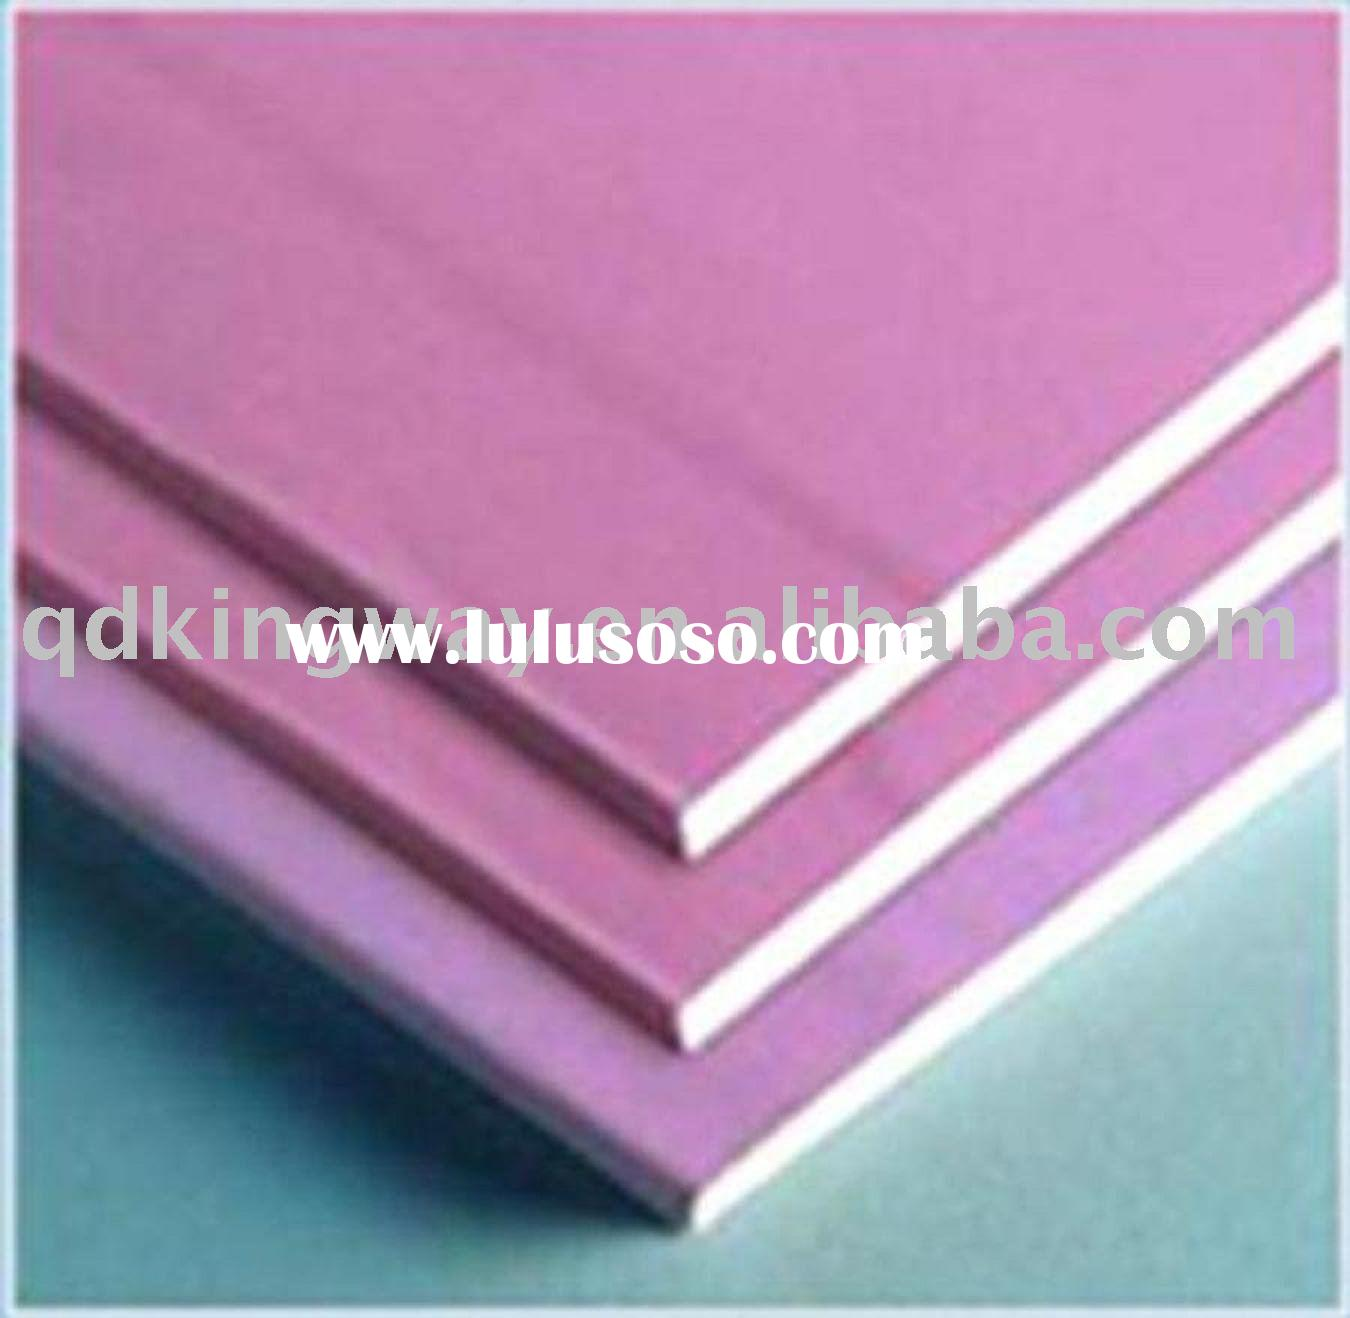 Fireproof Gypsum (Plaster) draywall or Ceiling Board